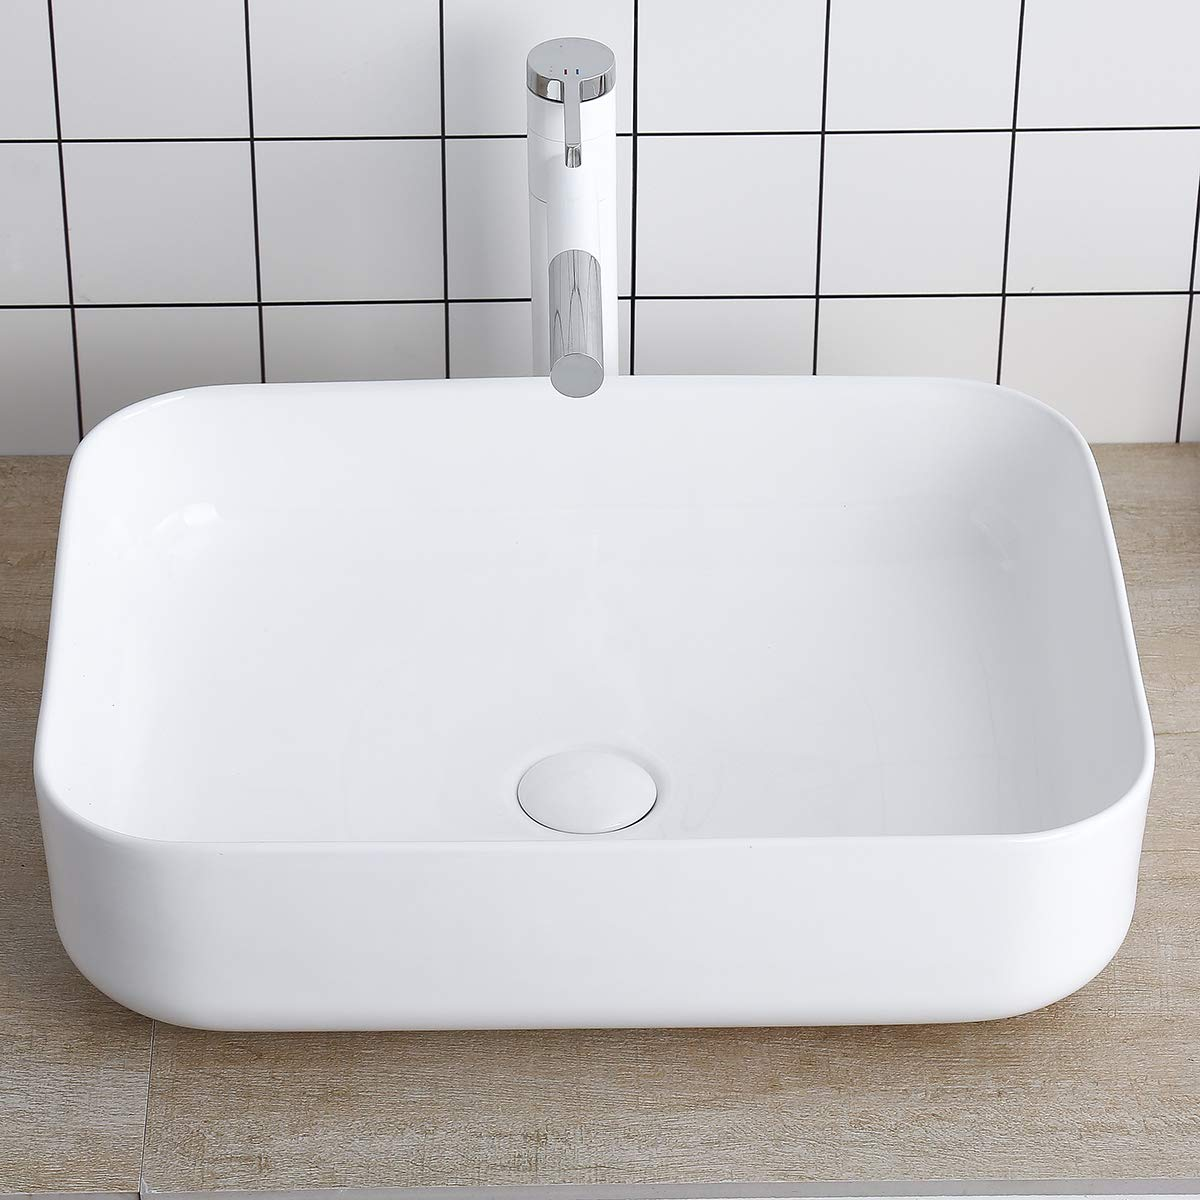 Rectangular White Porcelain Ceramic Sink Bathroom Vessel Sink 19 Inch – Bathroom Vanity Bowl Above Counter Sink Art Basin Lalasani Kitchen Sink Fireclay Farmhouse Sink